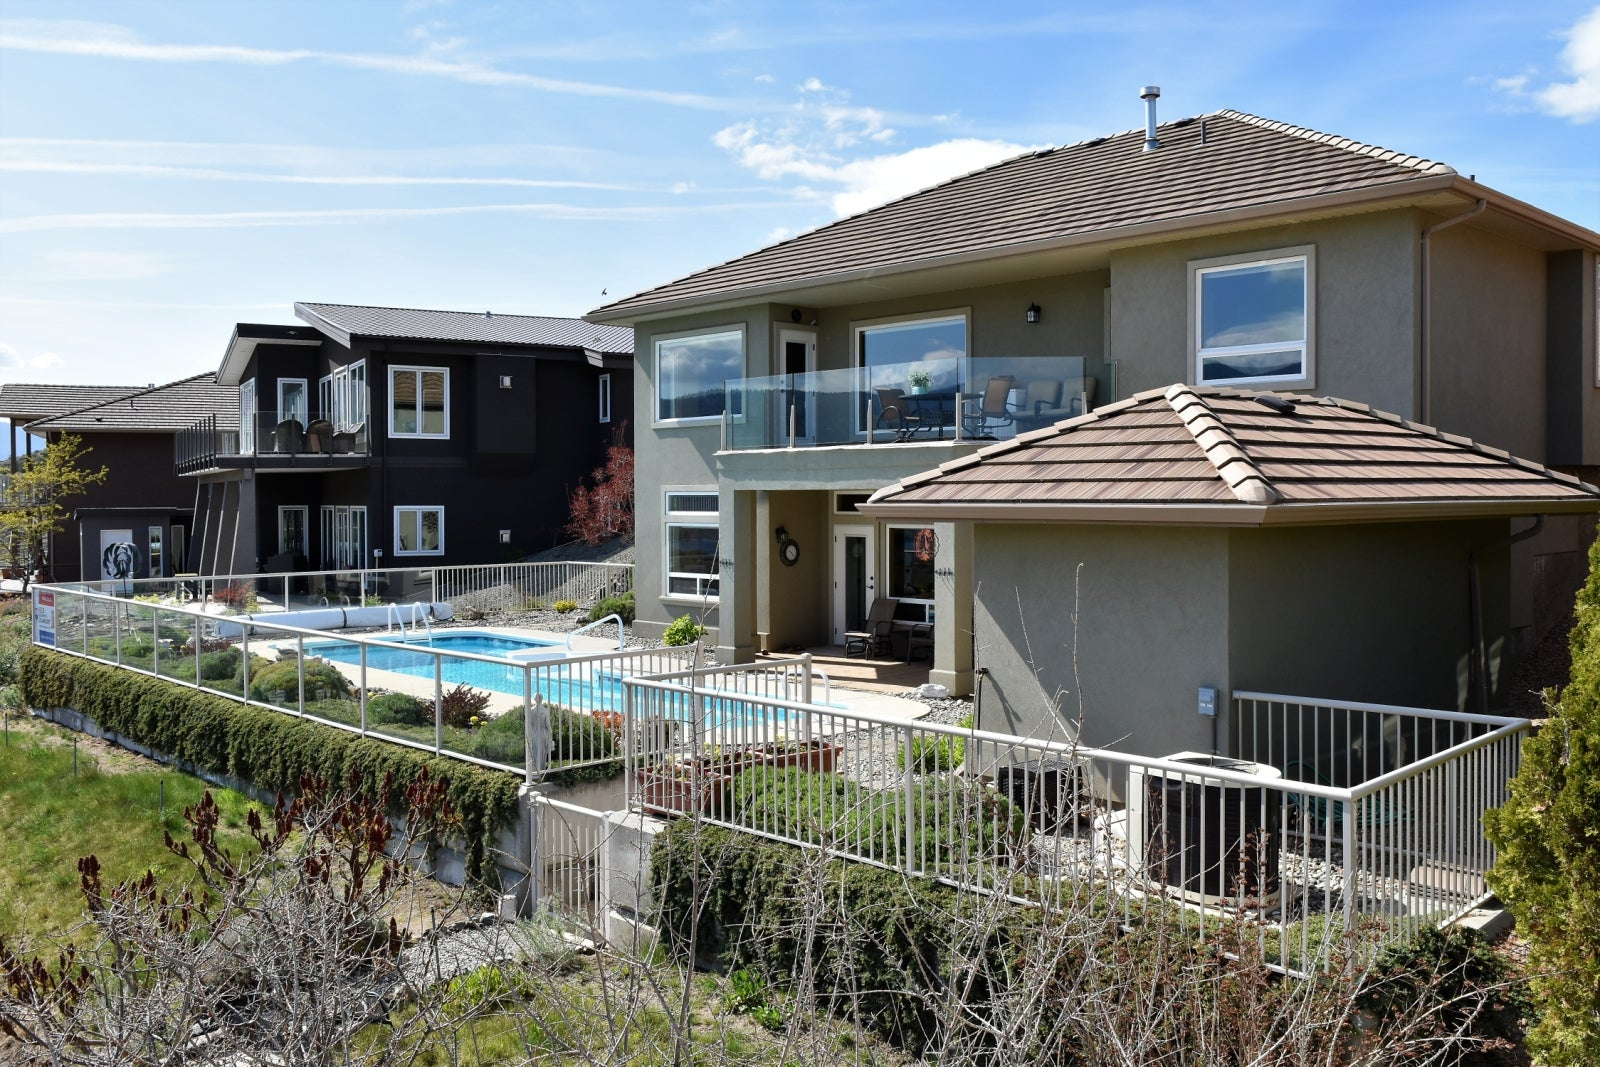 11715 Olympic View Drive - Osoyoos Single Family for sale, 4 Bedrooms (176846) #10